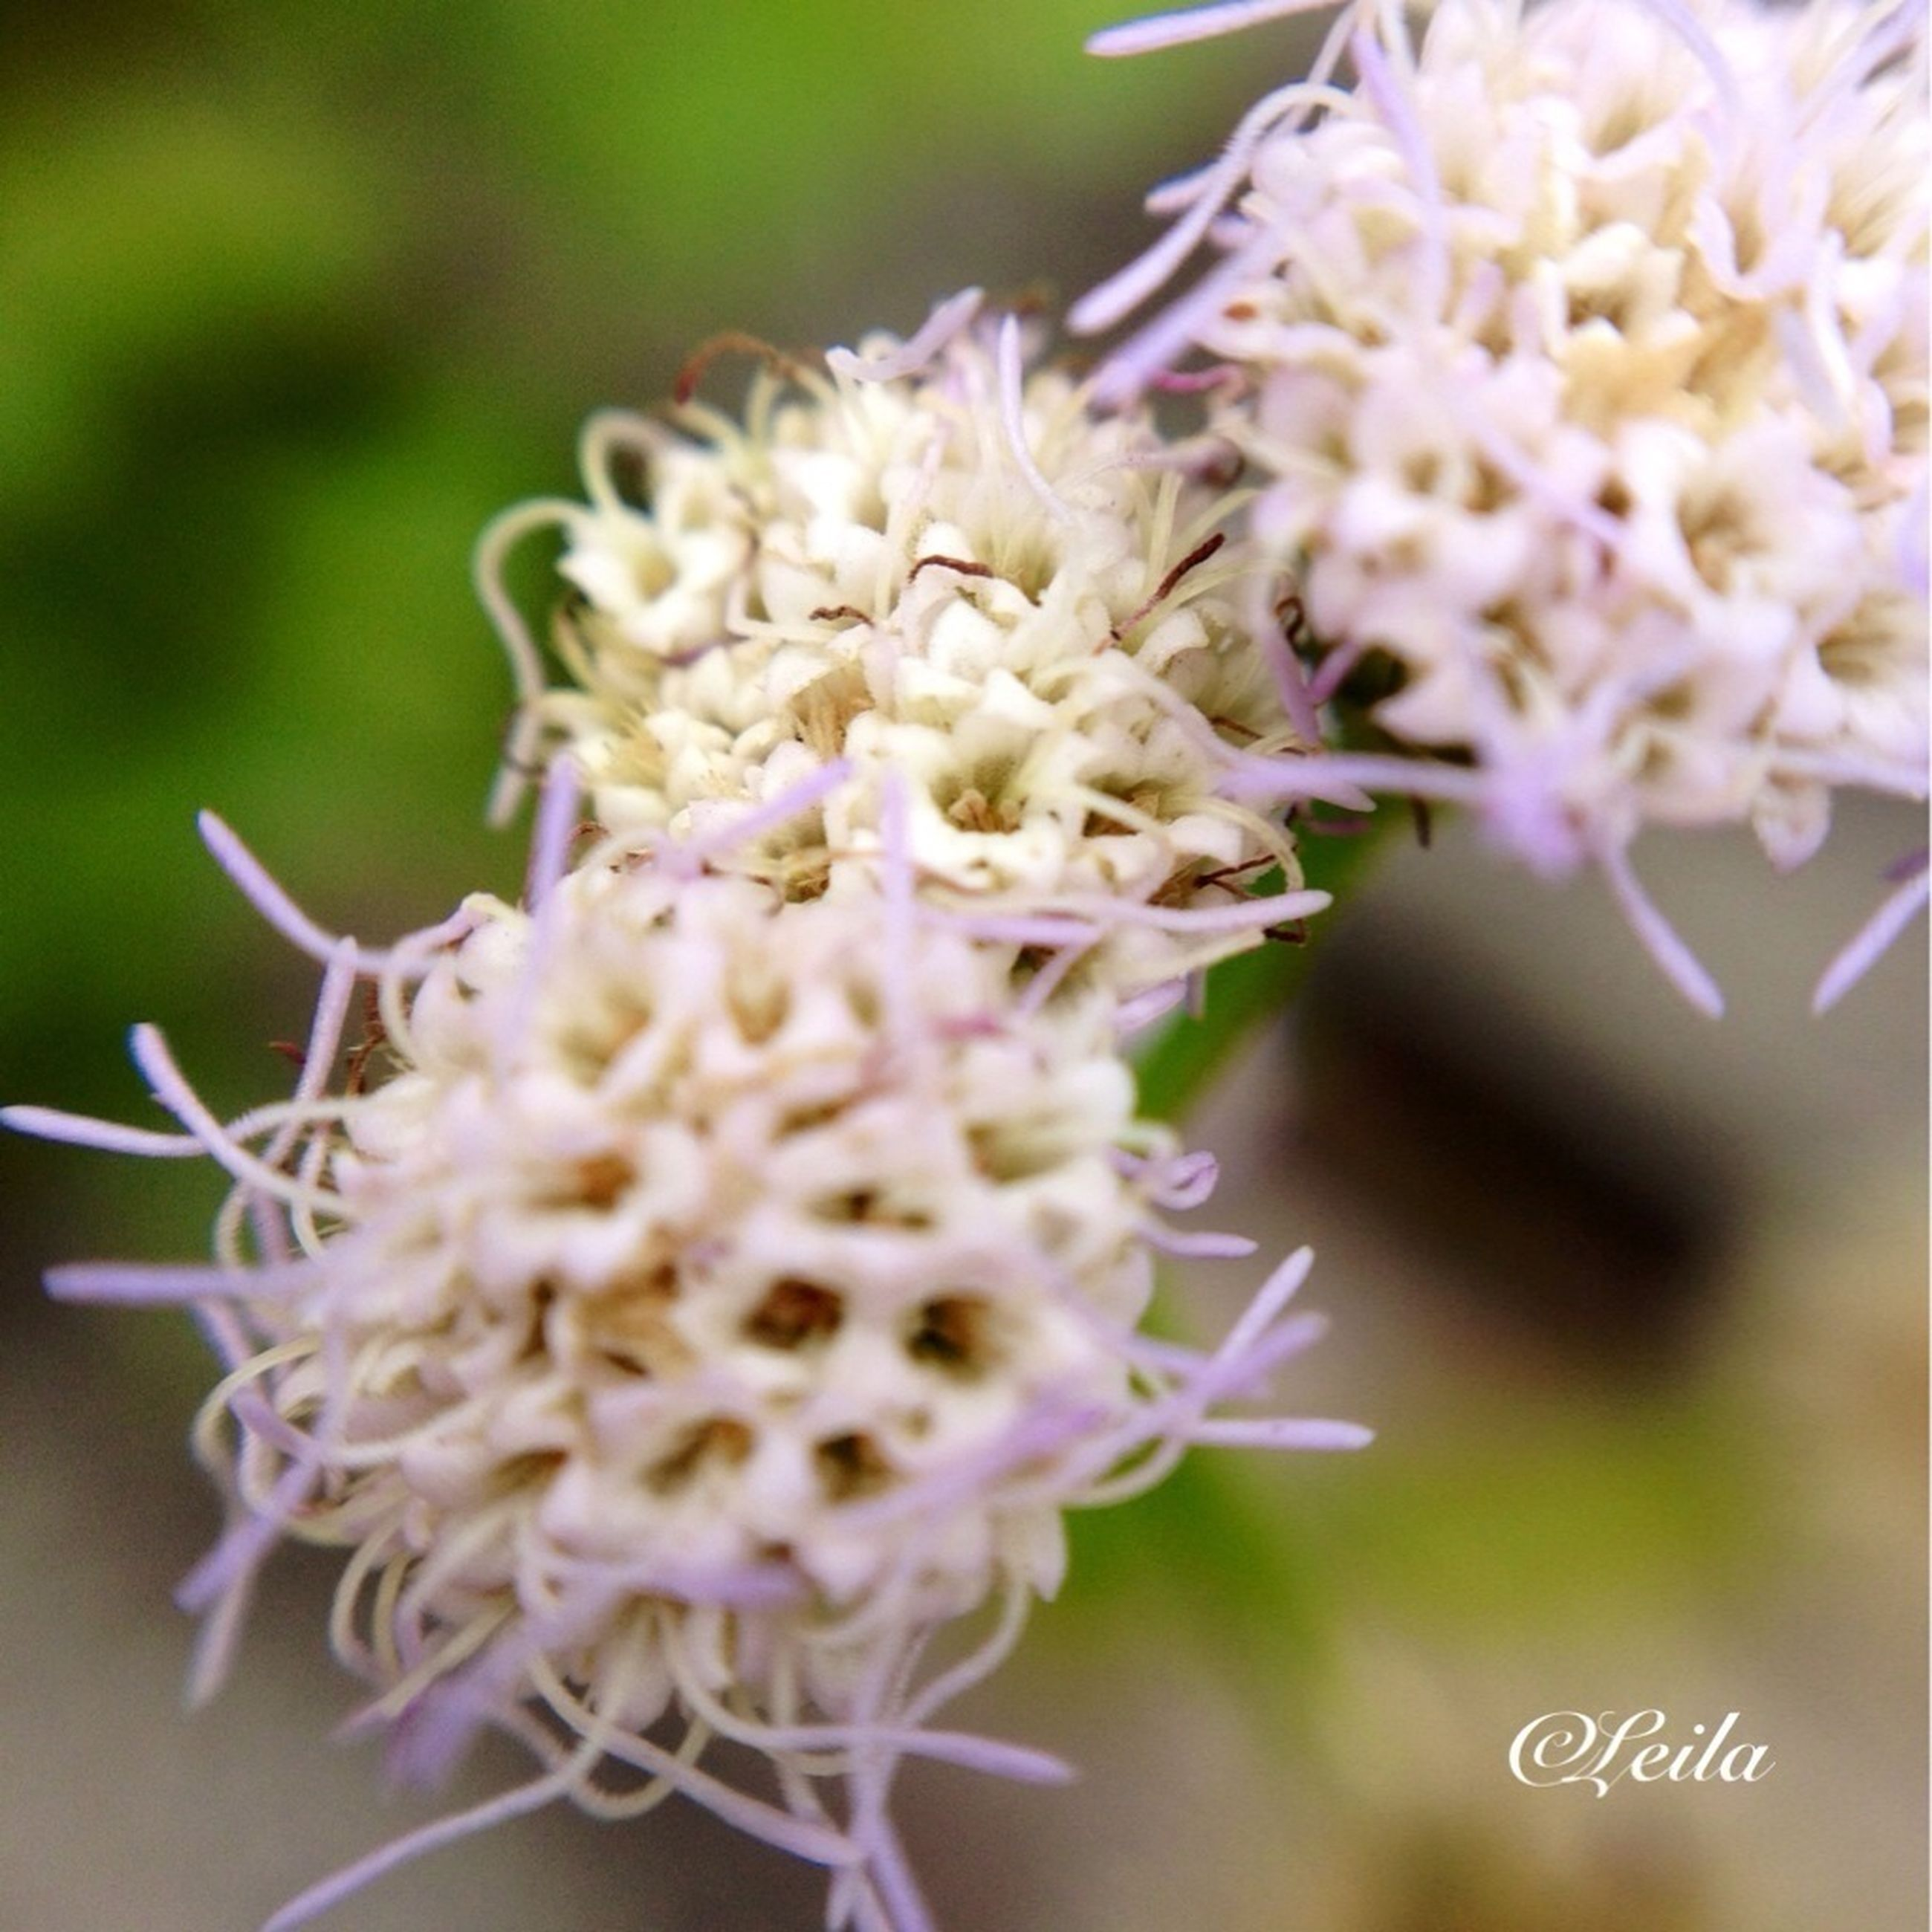 flower, freshness, fragility, close-up, growth, focus on foreground, petal, flower head, beauty in nature, nature, selective focus, plant, bud, blooming, stem, blossom, springtime, botany, in bloom, day